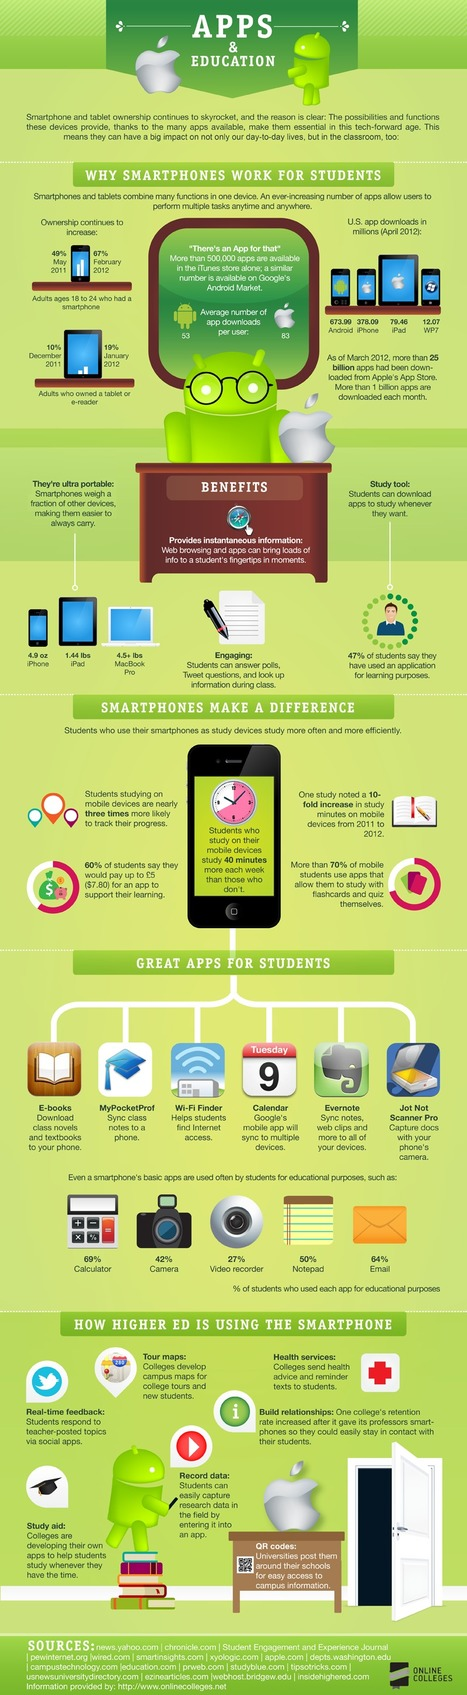 Trends | Infographic: Apps and Education | ENT | Scoop.it